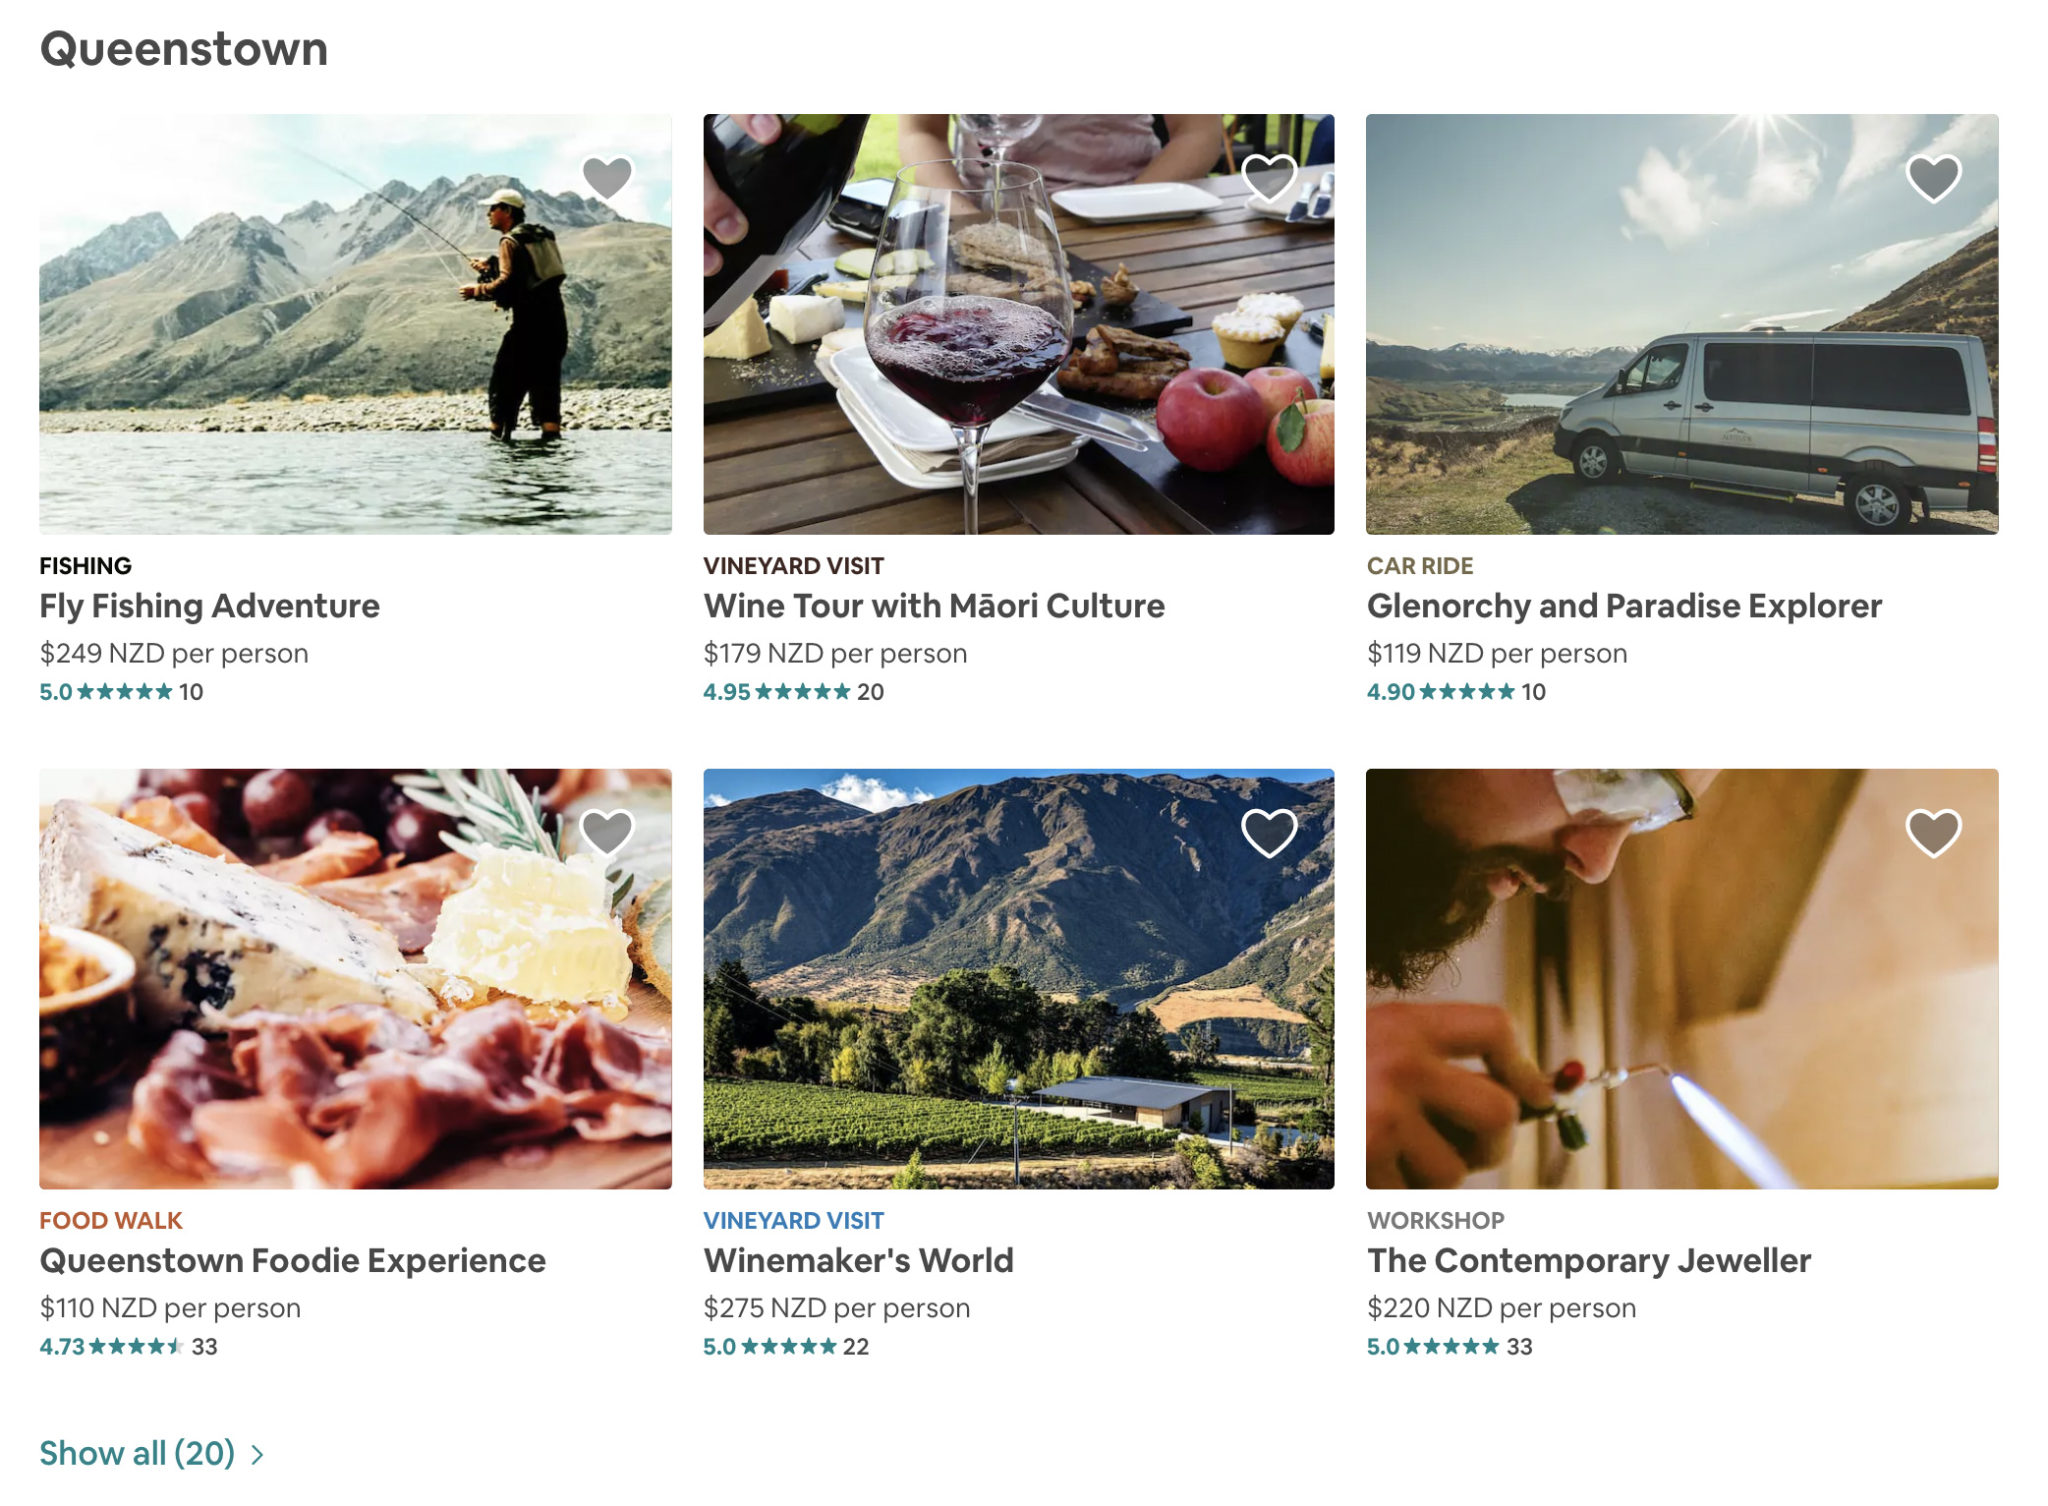 Airbnb Experiences Vs Tours and Activities - Wherewolf